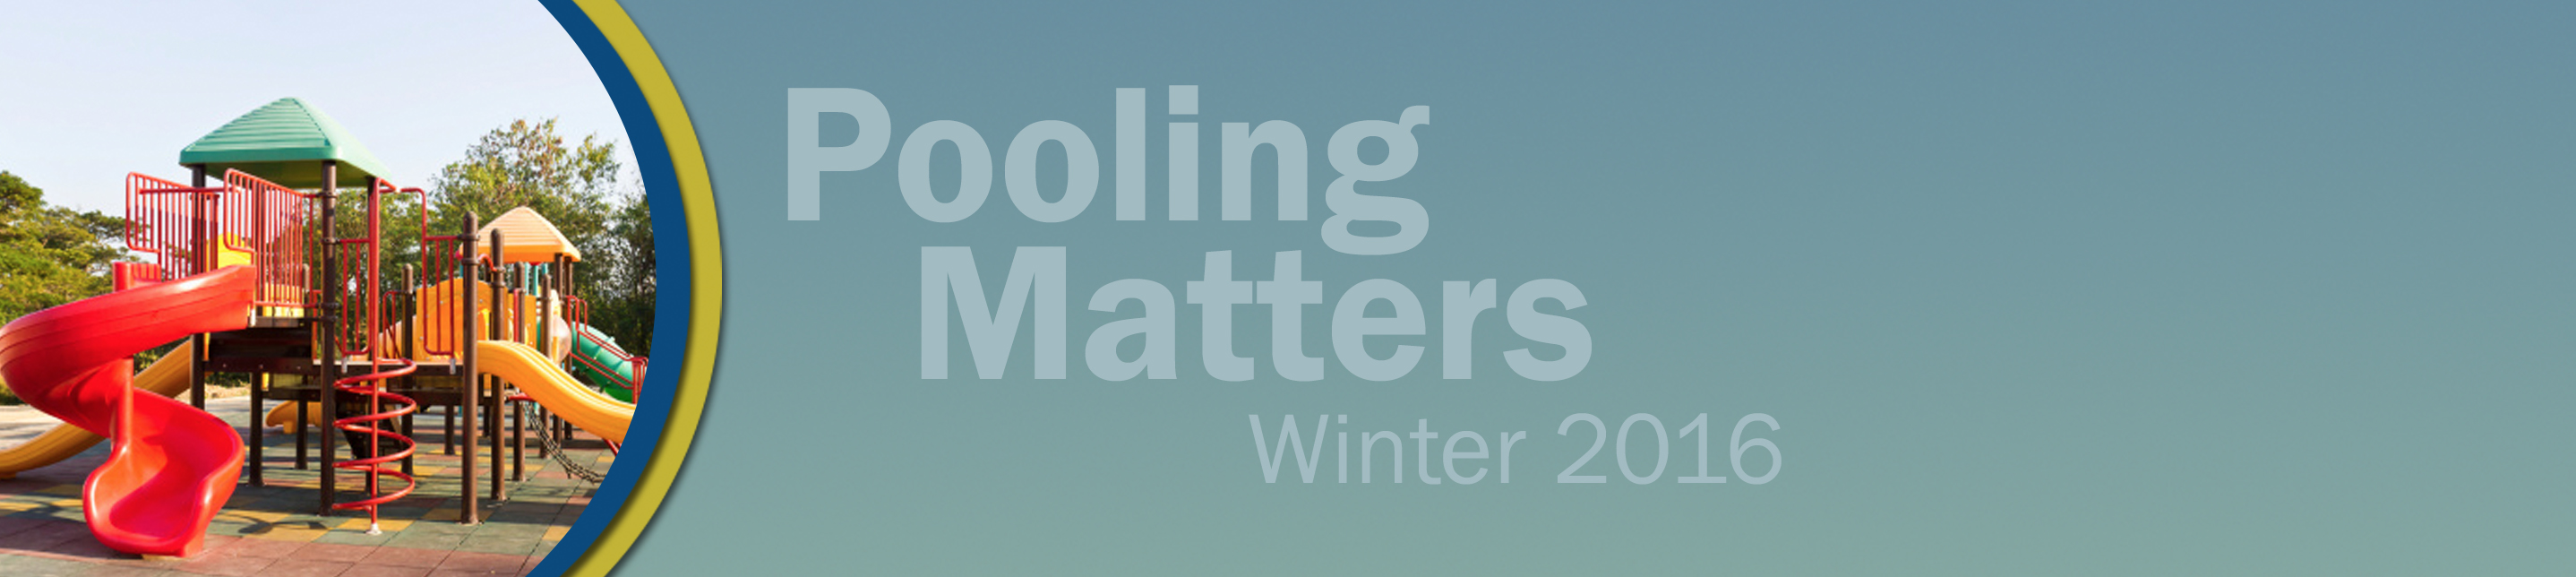 Pooling Matters: 2016 Winter Issue